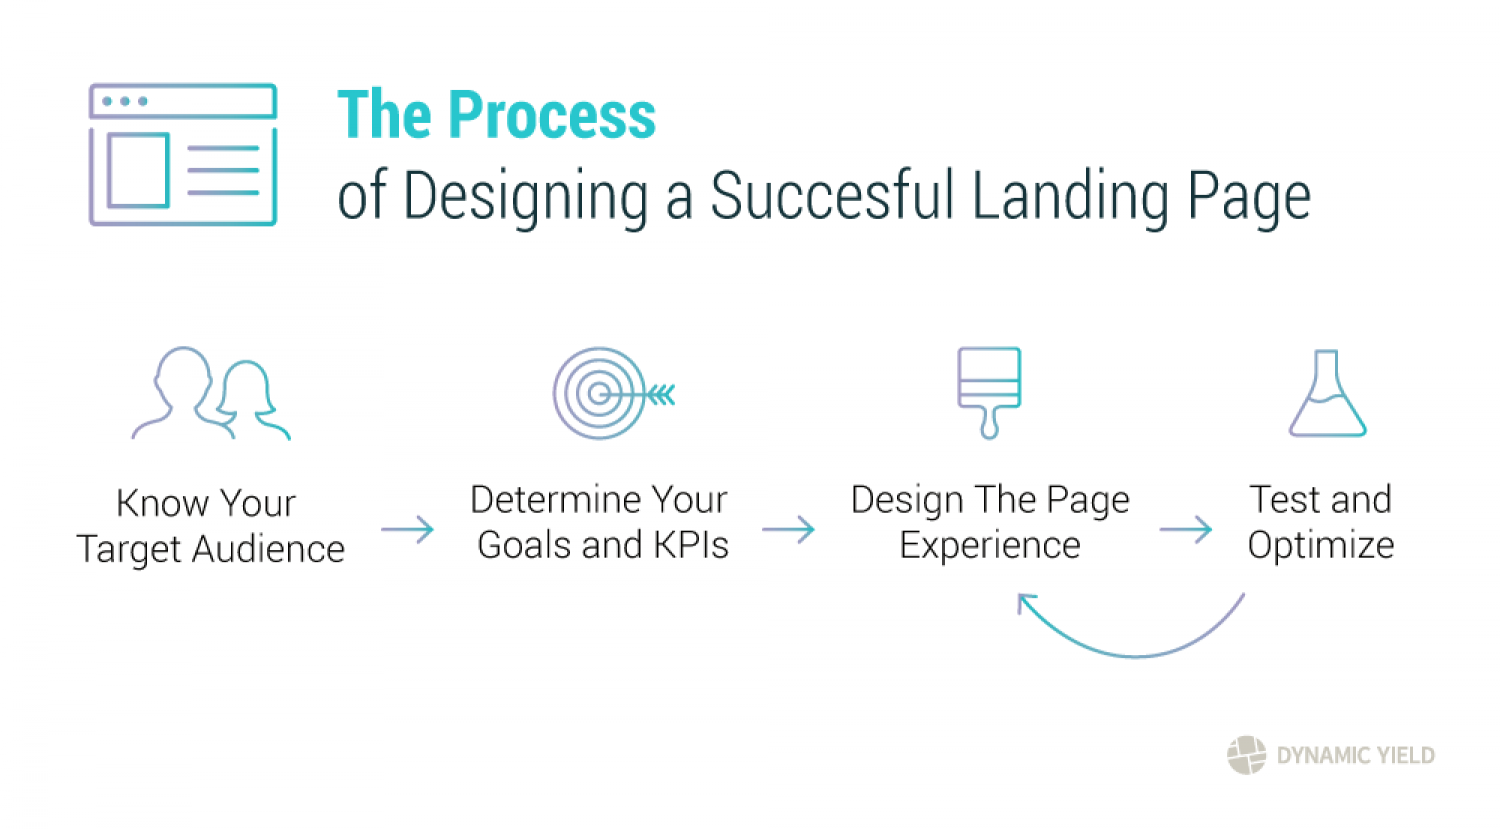 Designing a Successful Landing Page Infographic